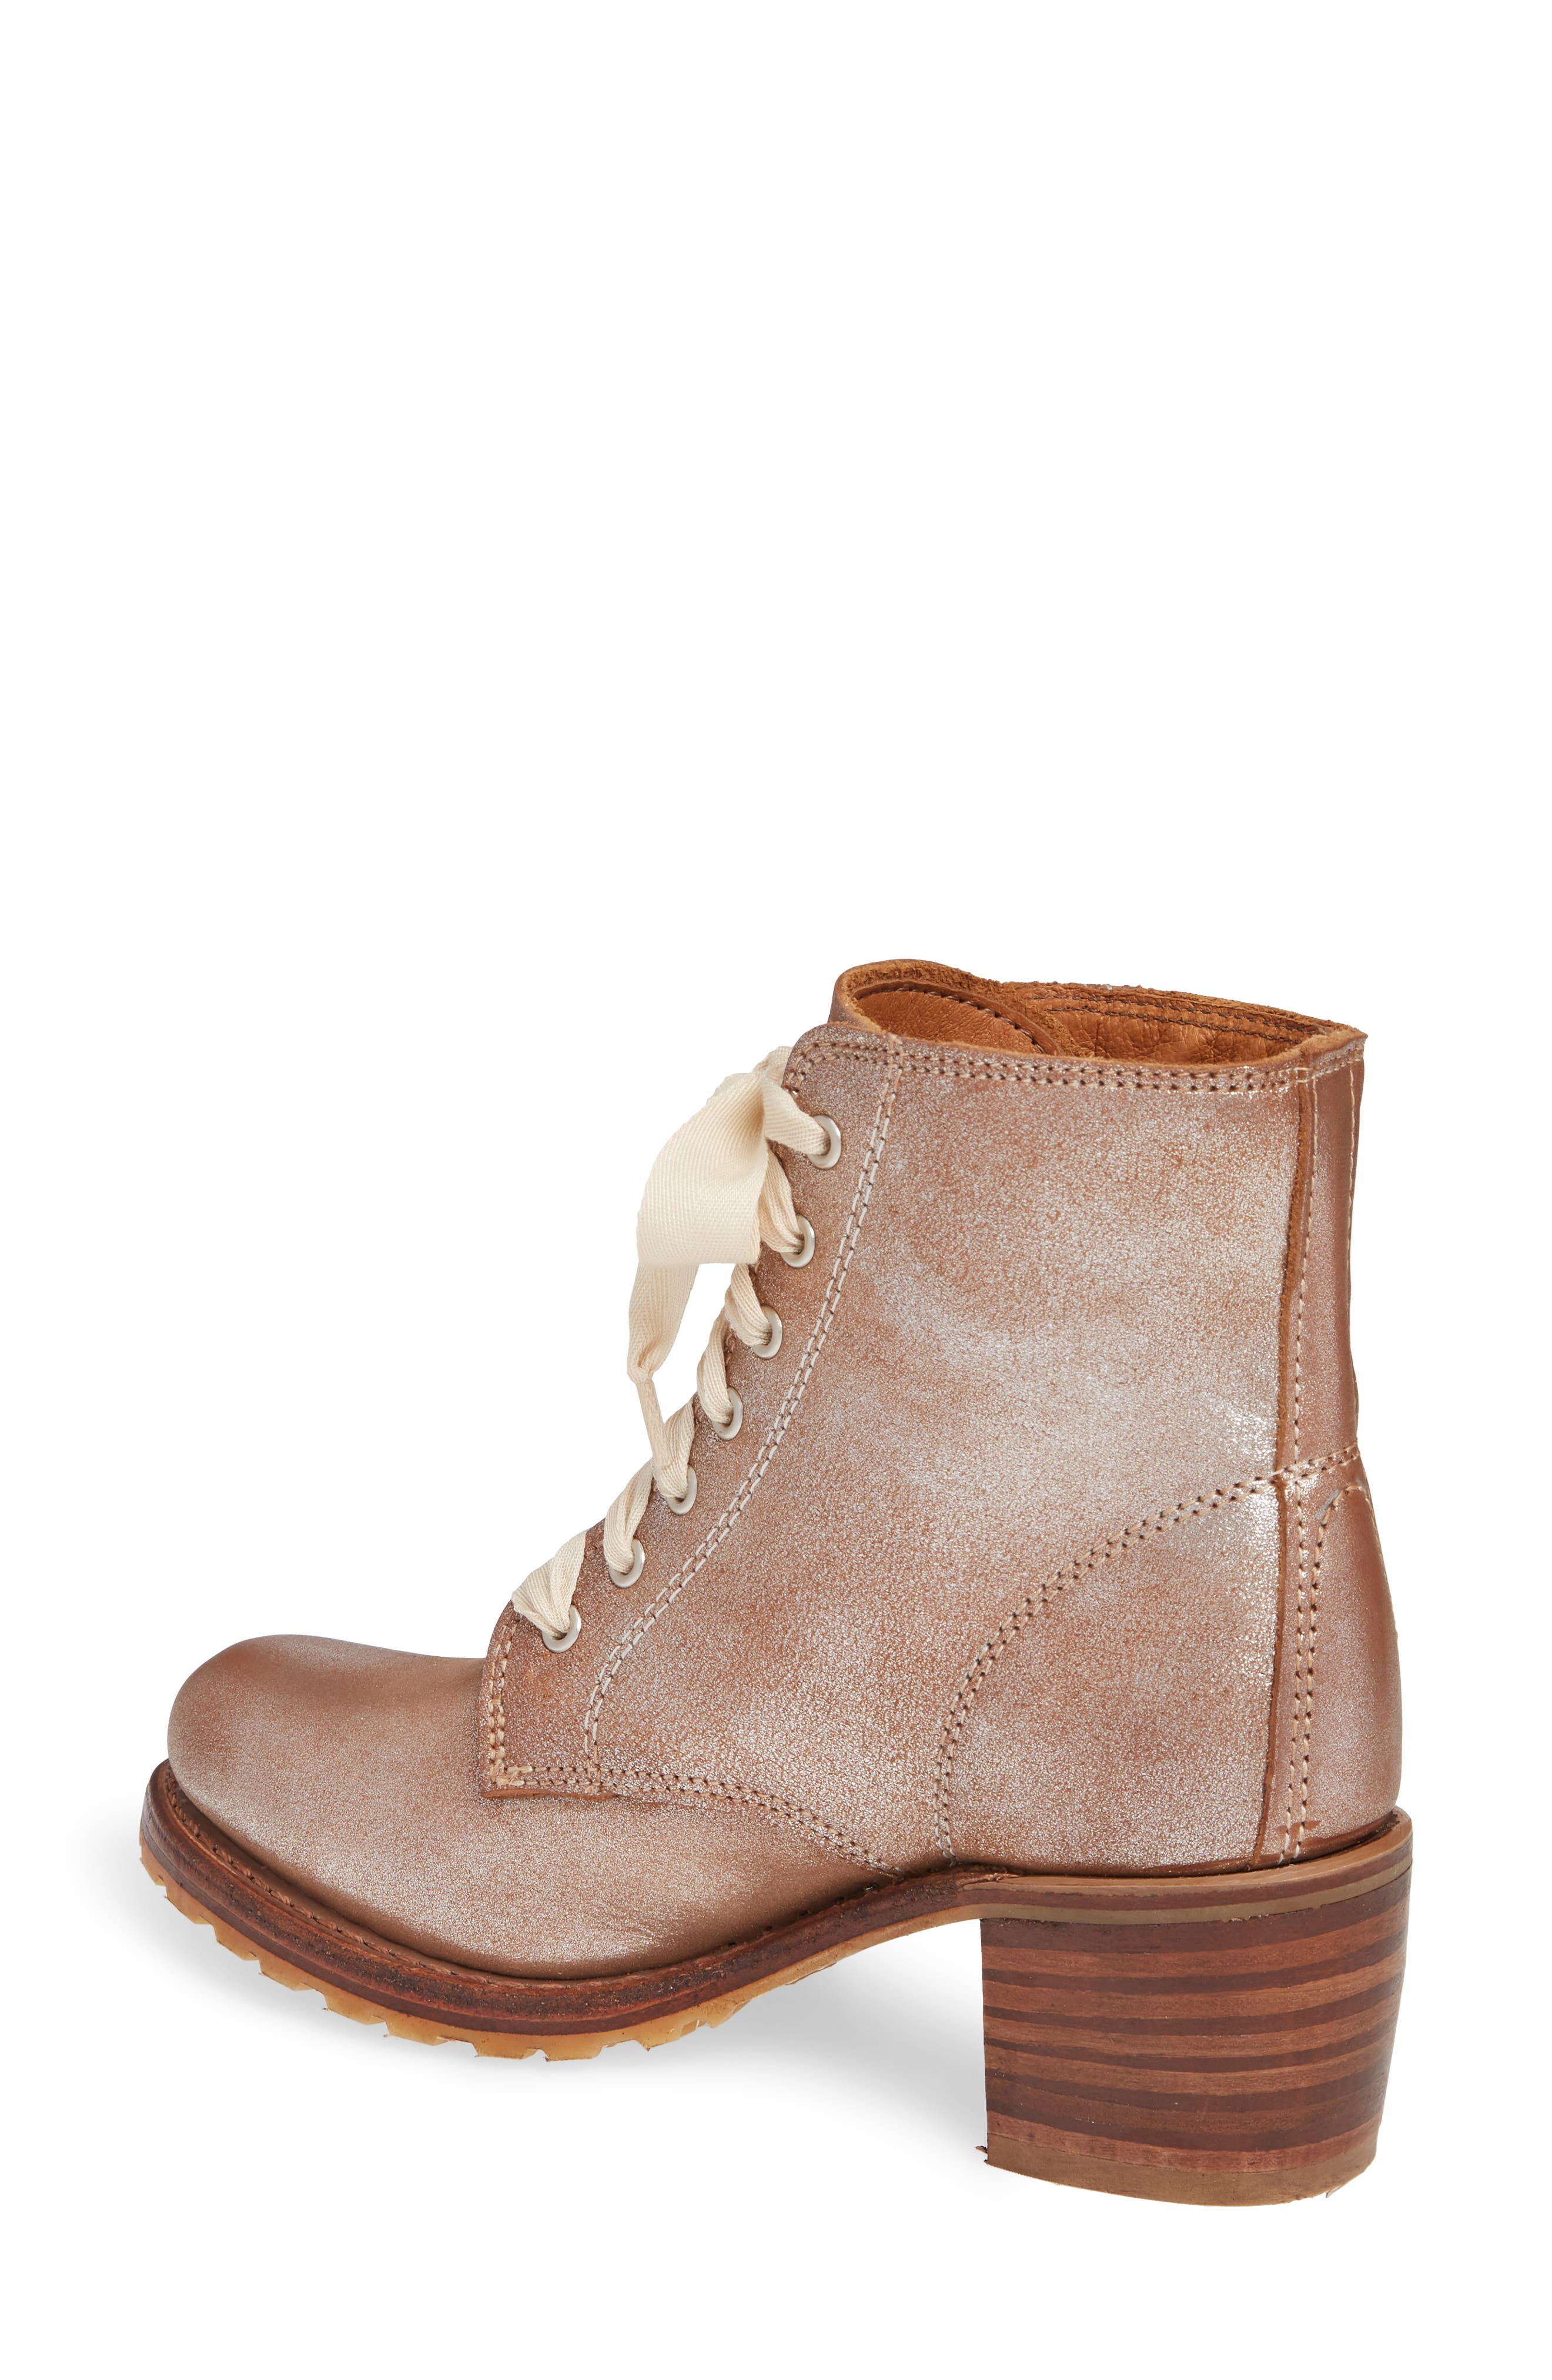 'Sabrina' Boot,                             Alternate thumbnail 2, color,                             SILVER LEATHER